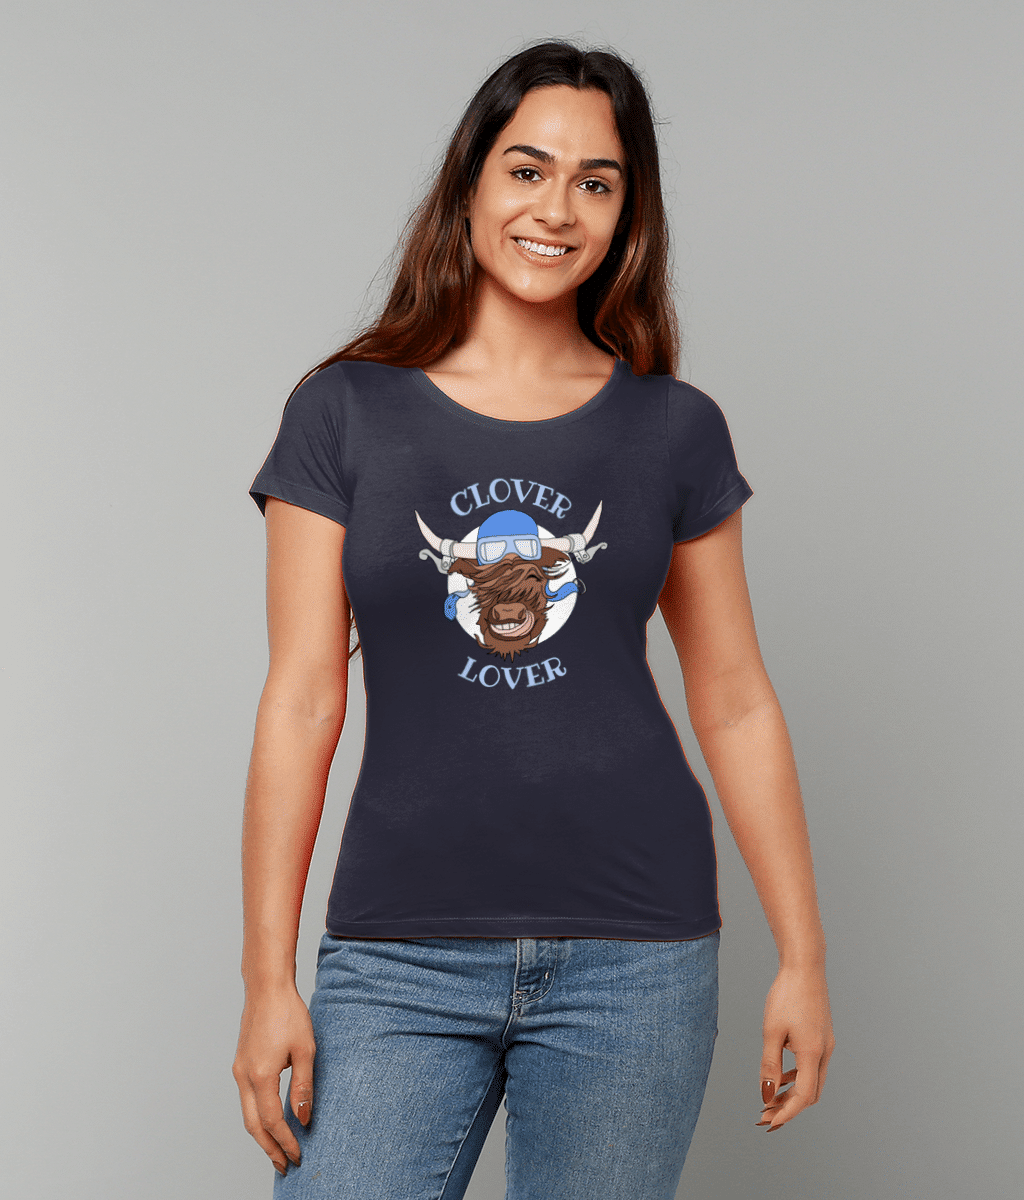 Clover Lover Women's Fitted T-Shirt